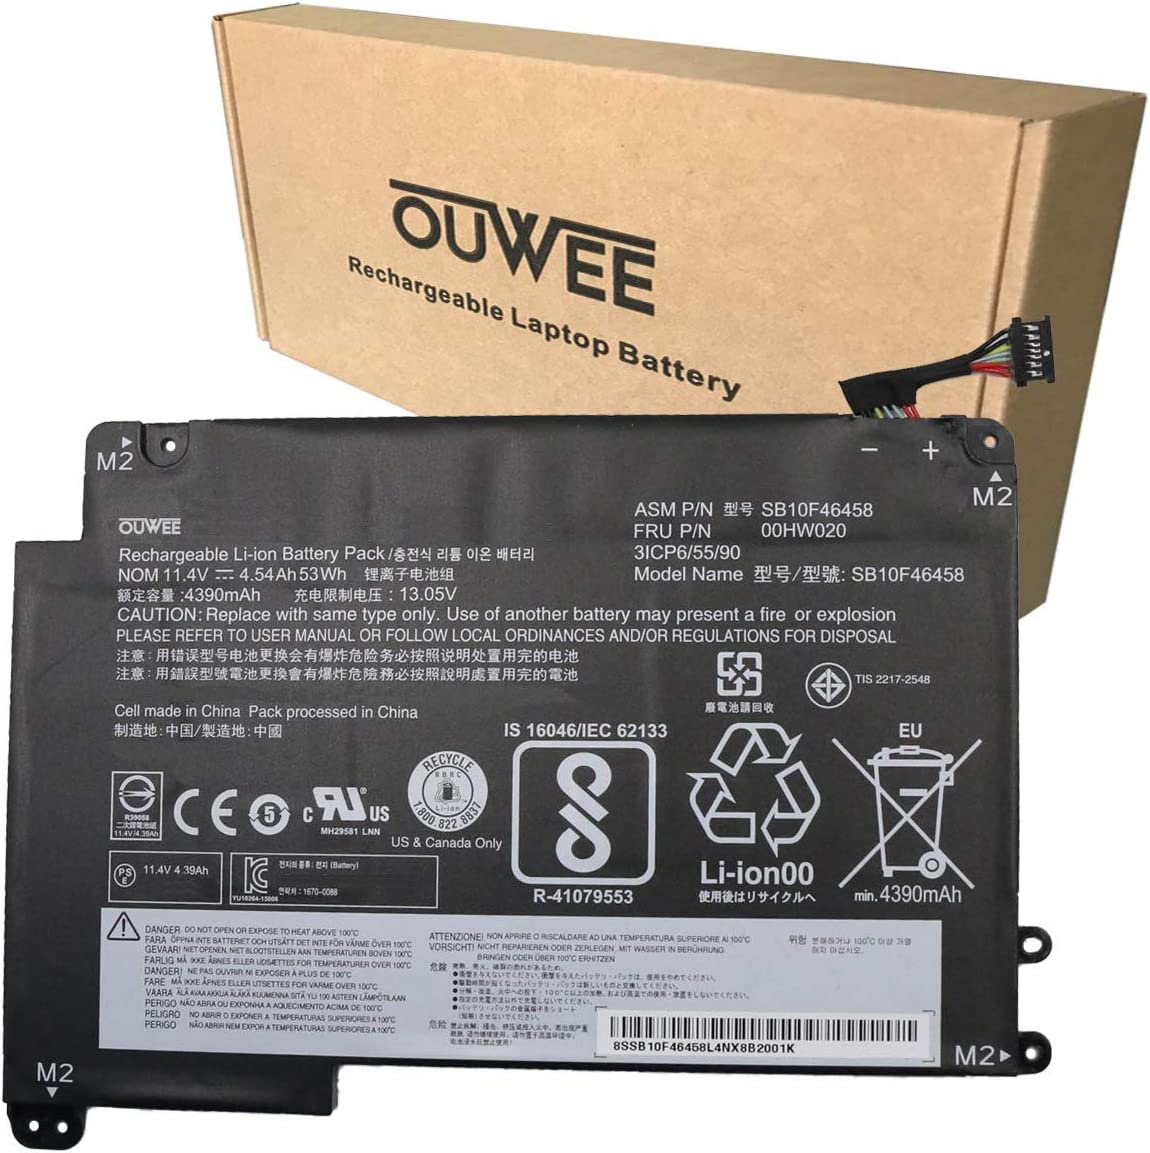 OUWEE 00HW020 Laptop Battery Compatible with Lenovo ThinkPad Yoga 460 P40 Yoga Series Notebook 00HW021 SB10F46458 SB10F46459 11.4V 53Wh 4540mAh 3-Cell